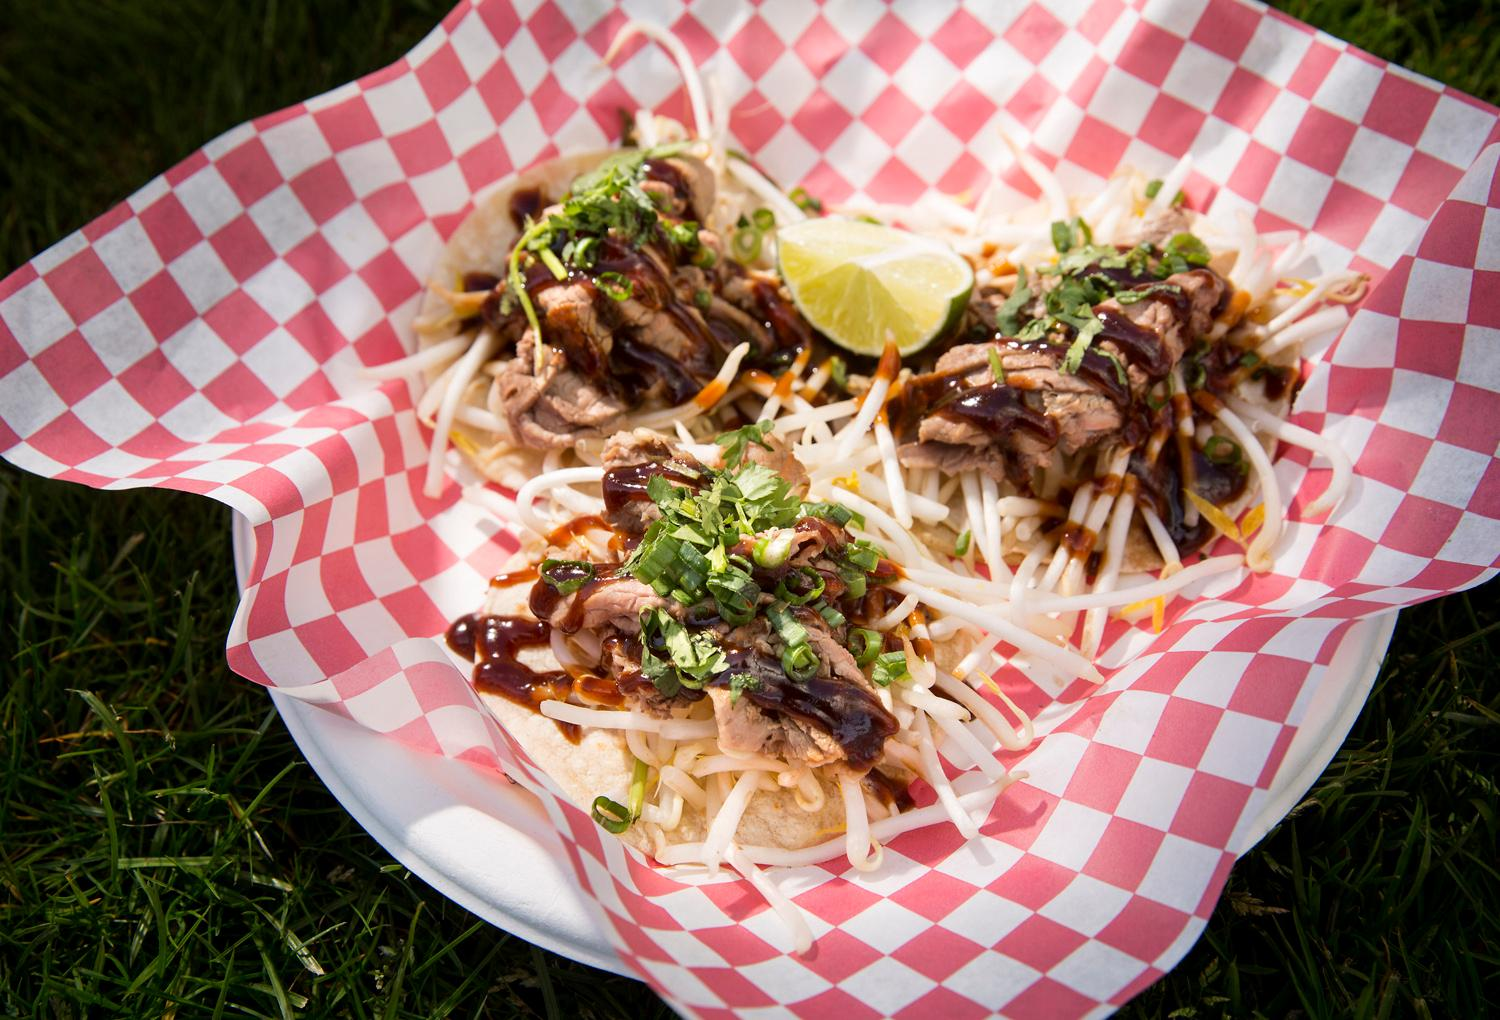 The Pho Tacos - Three street-sized corn tortillas topped with bean sprouts, Asian beef, pho sauce, green onion, cilantro with a lime wedge at the Peasant Food Manifesto truck. Owner Beth Clement began the food truck over four years ago and served up Pho Tacos as a joke - but it was a joke that stuck around because people absolutely craved them. Also, after being frustrated with her experiences ordering out pho, she decided on the Pho French Dip, which in her opinion is the best way to eat pho-to-go. If you are craving these fusion foods, you can find her truck on the brewery circuit at locations such as Obec, Populuxe, Reubens, Broadview, and Ounces. Check out her website to see where she's at! (Sy Bean / Seattle Refined)